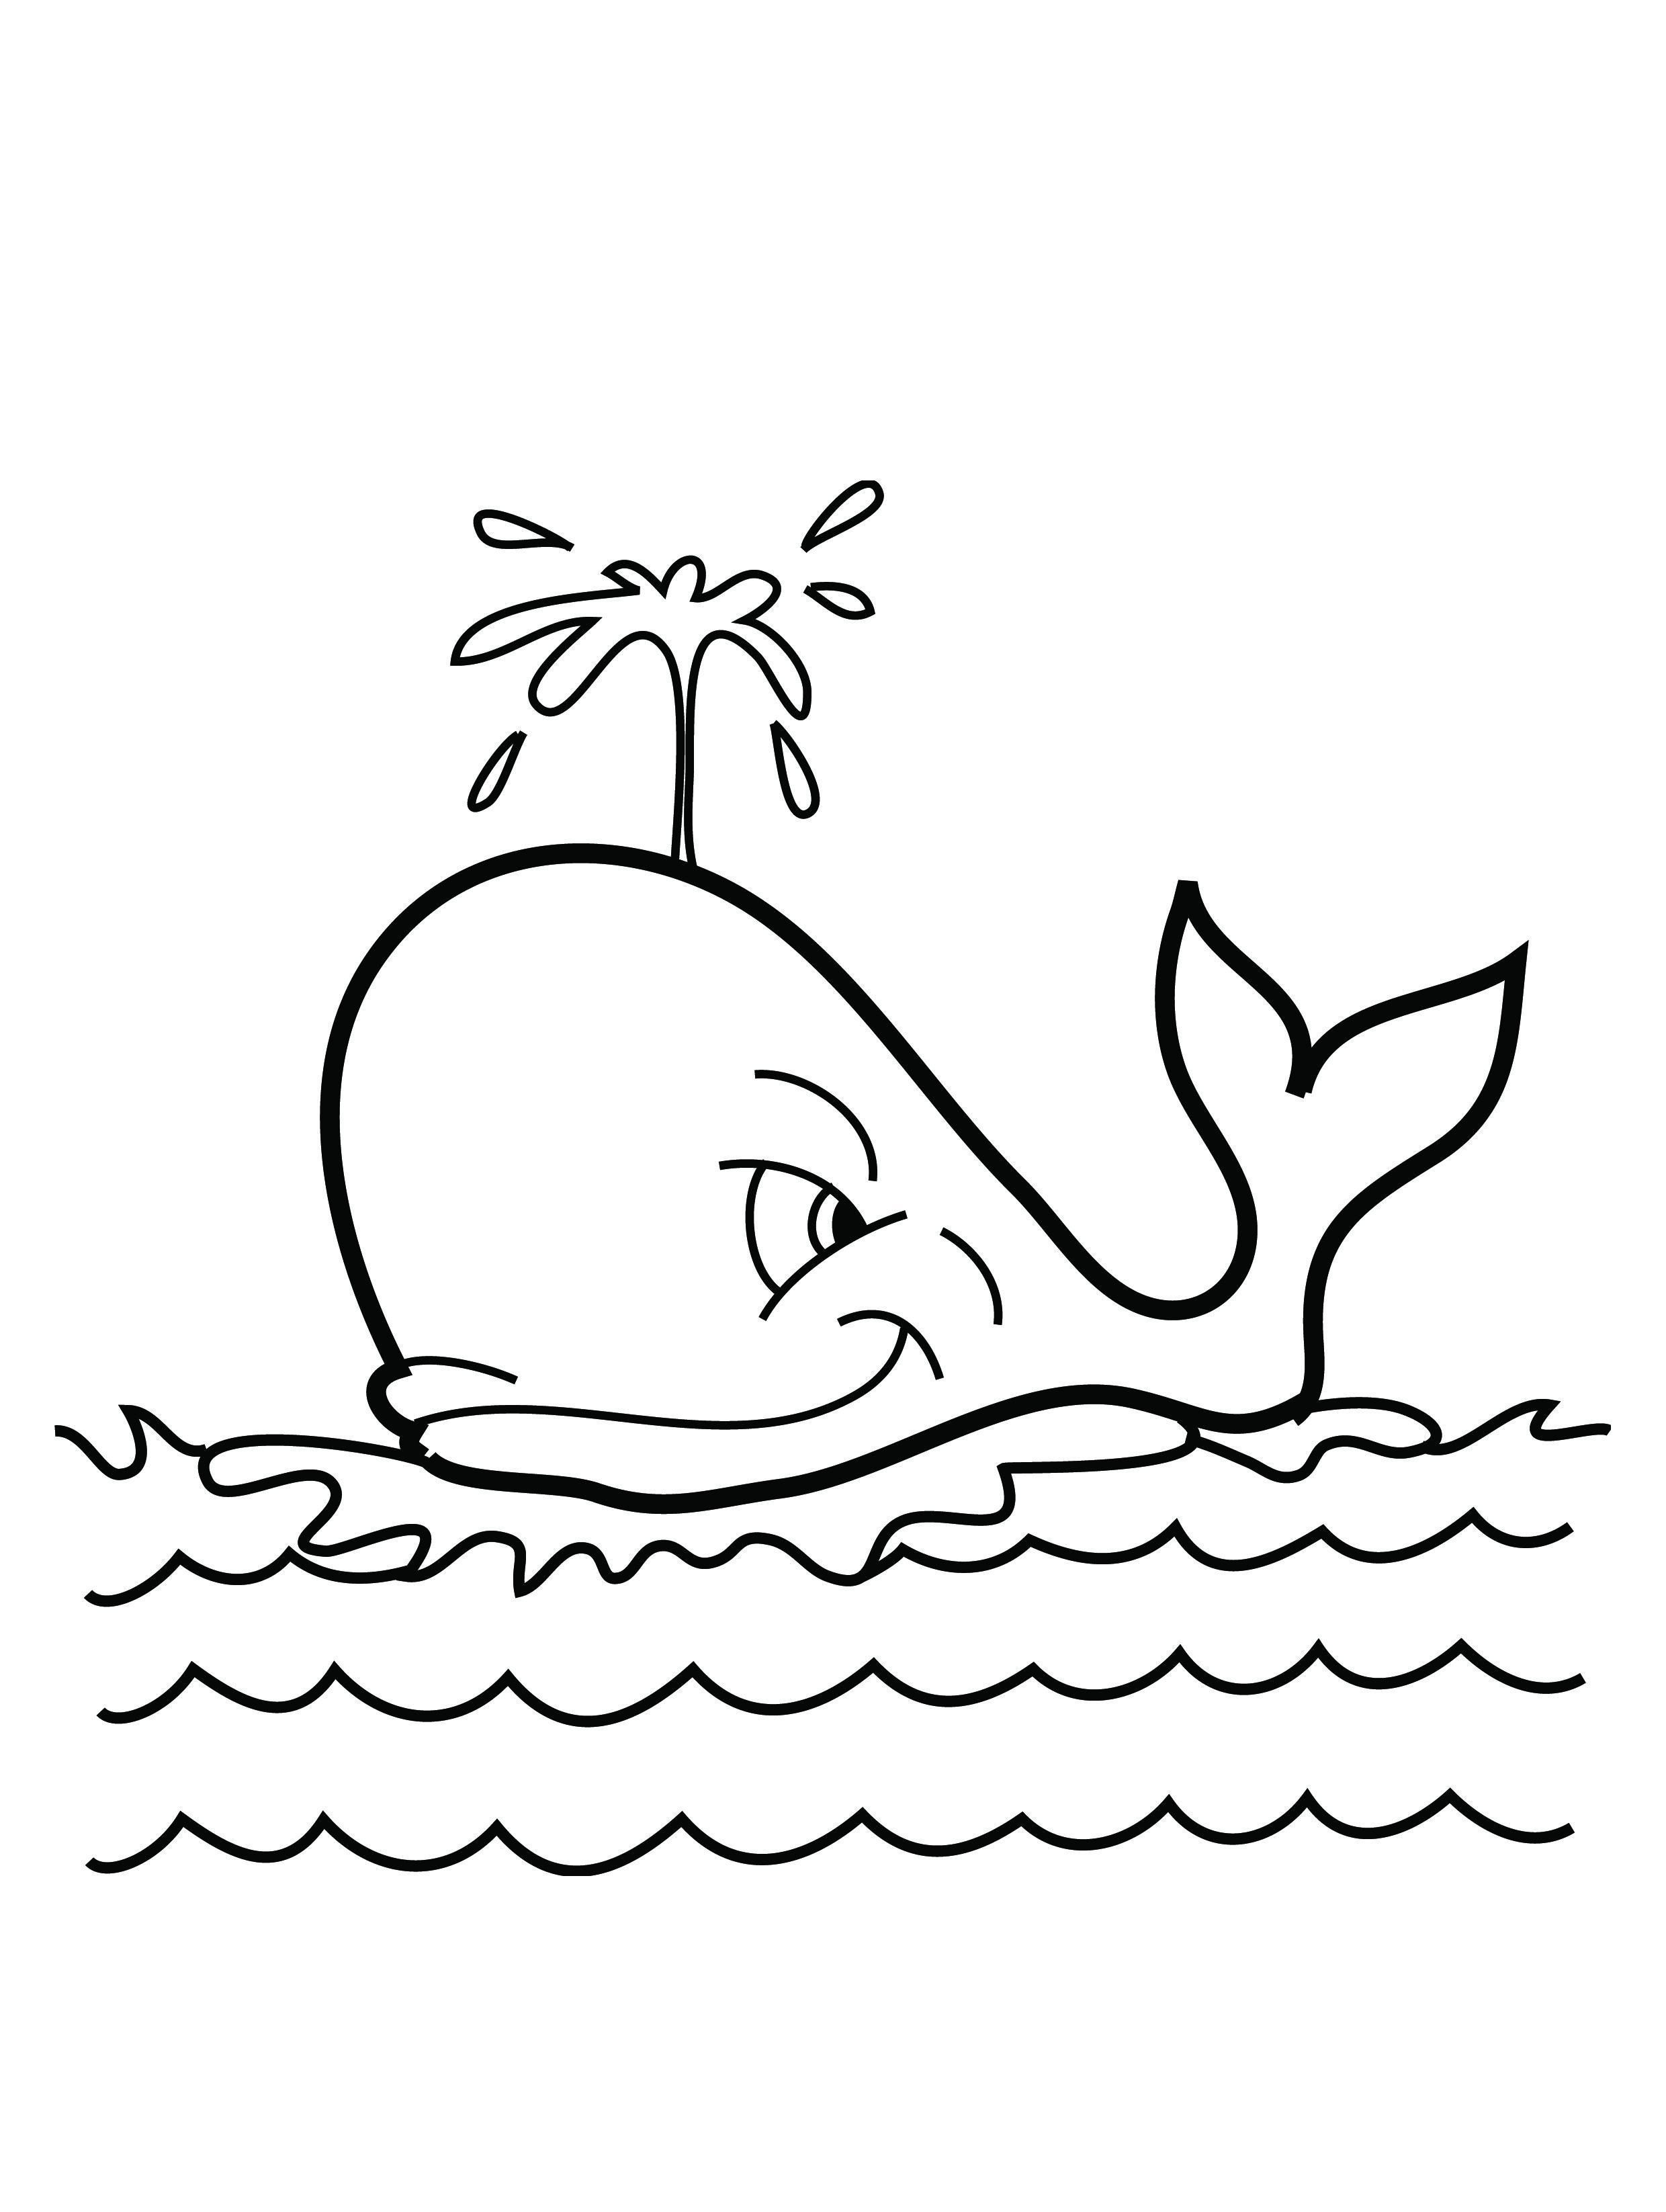 Whale-Coloring-Pages-For-Kids.jpg 2,480×3,292 pixels | Coloring ...